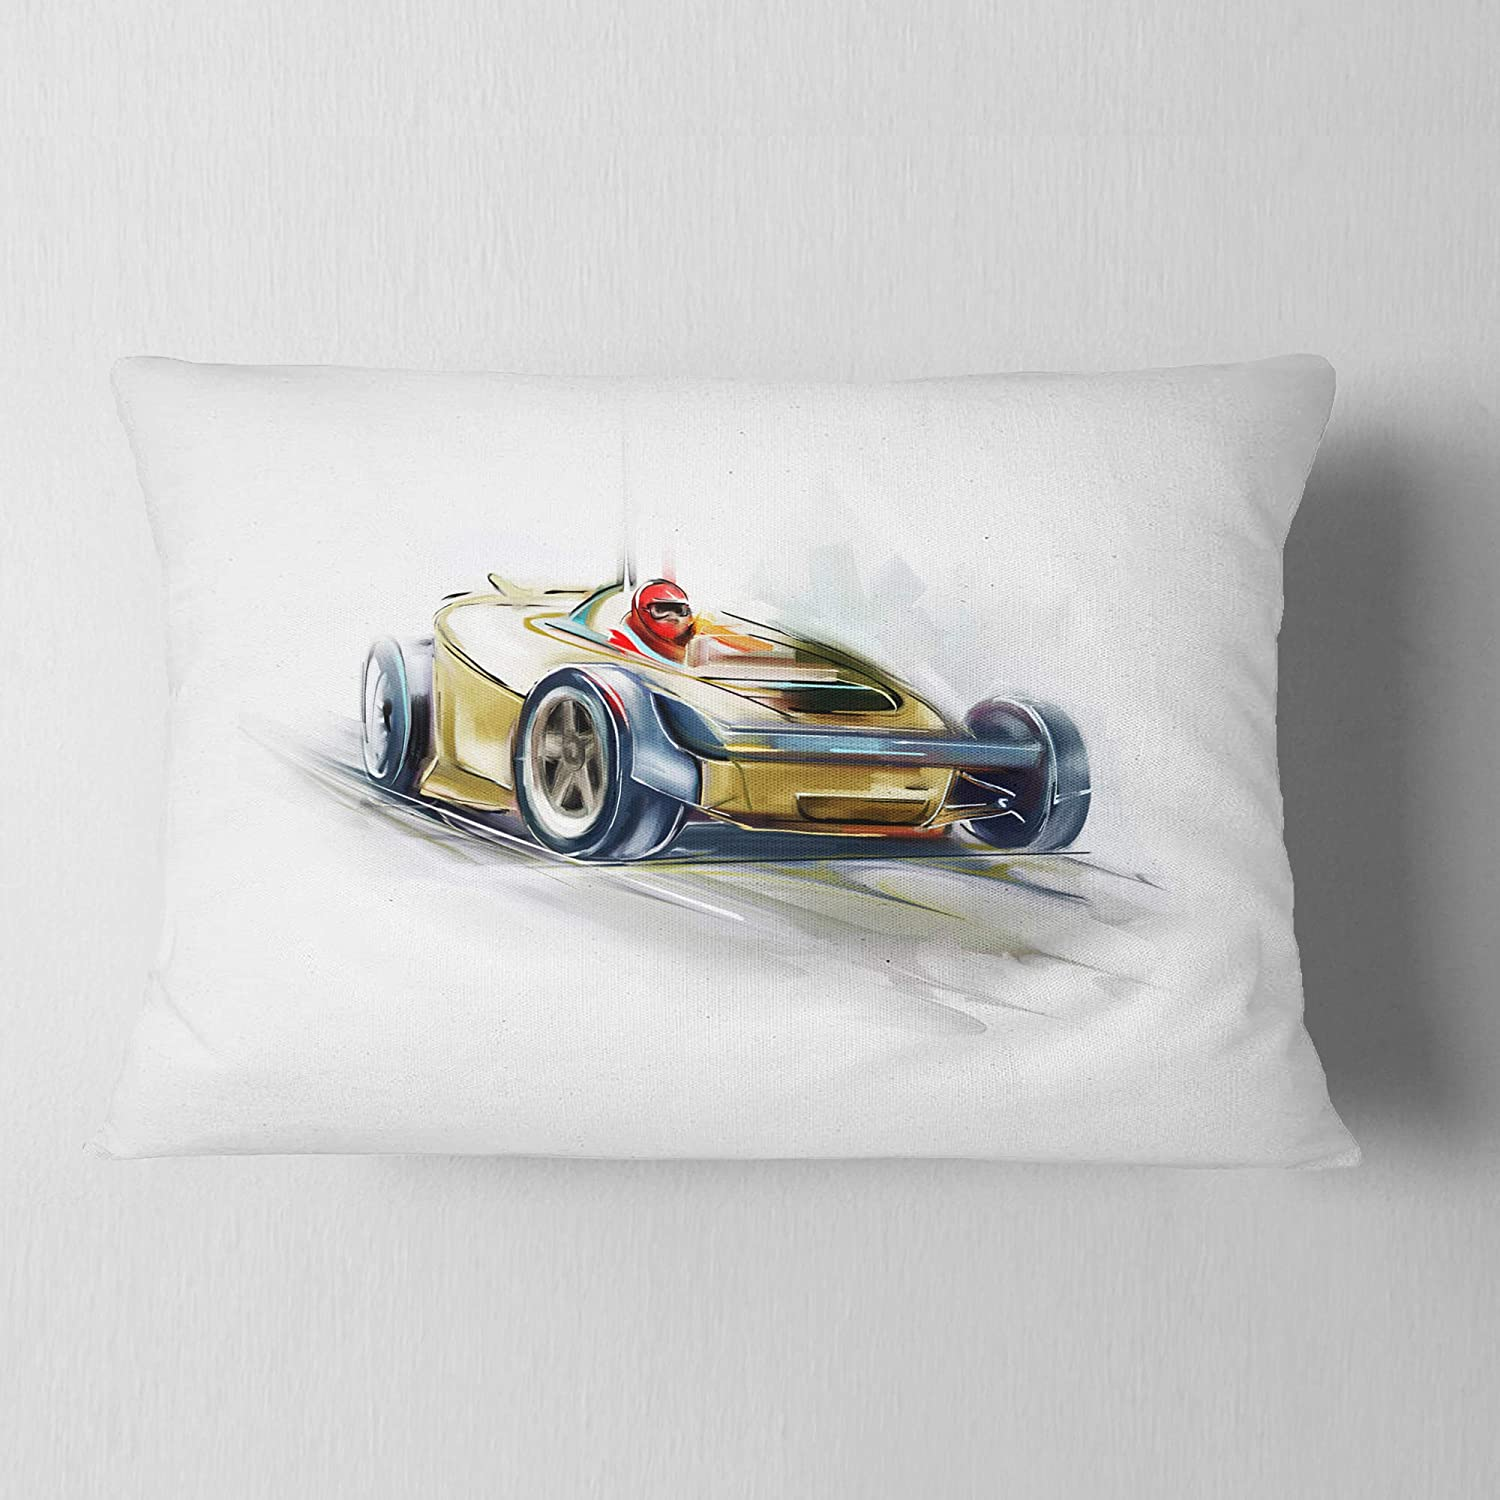 Sofa Throw Pillow 12 In Insert Printed On Both Side In Designart Cu7323 12 20 Yellow Formula One Digital Art Car Lumbar Cushion Cover For Living Room X 20 In Throw Pillow Covers Bedding